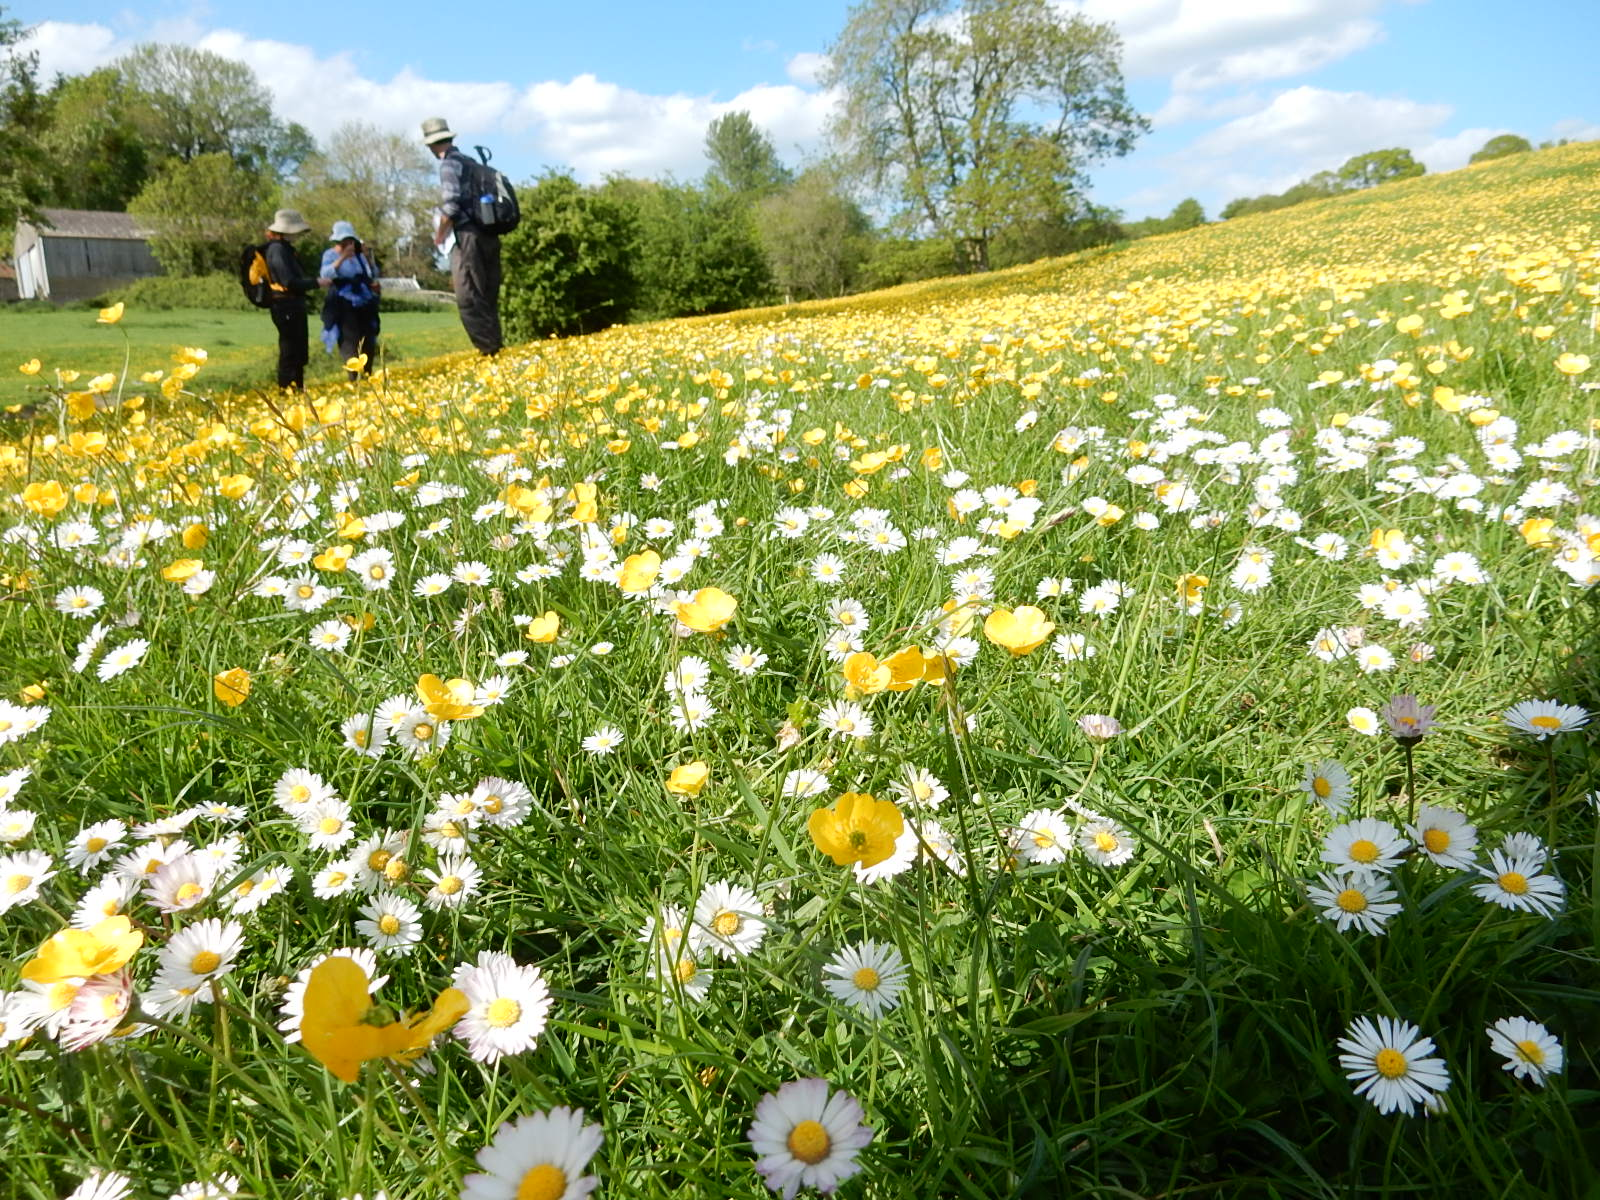 Buttercups and daisies Sutton Valence to Pluckley